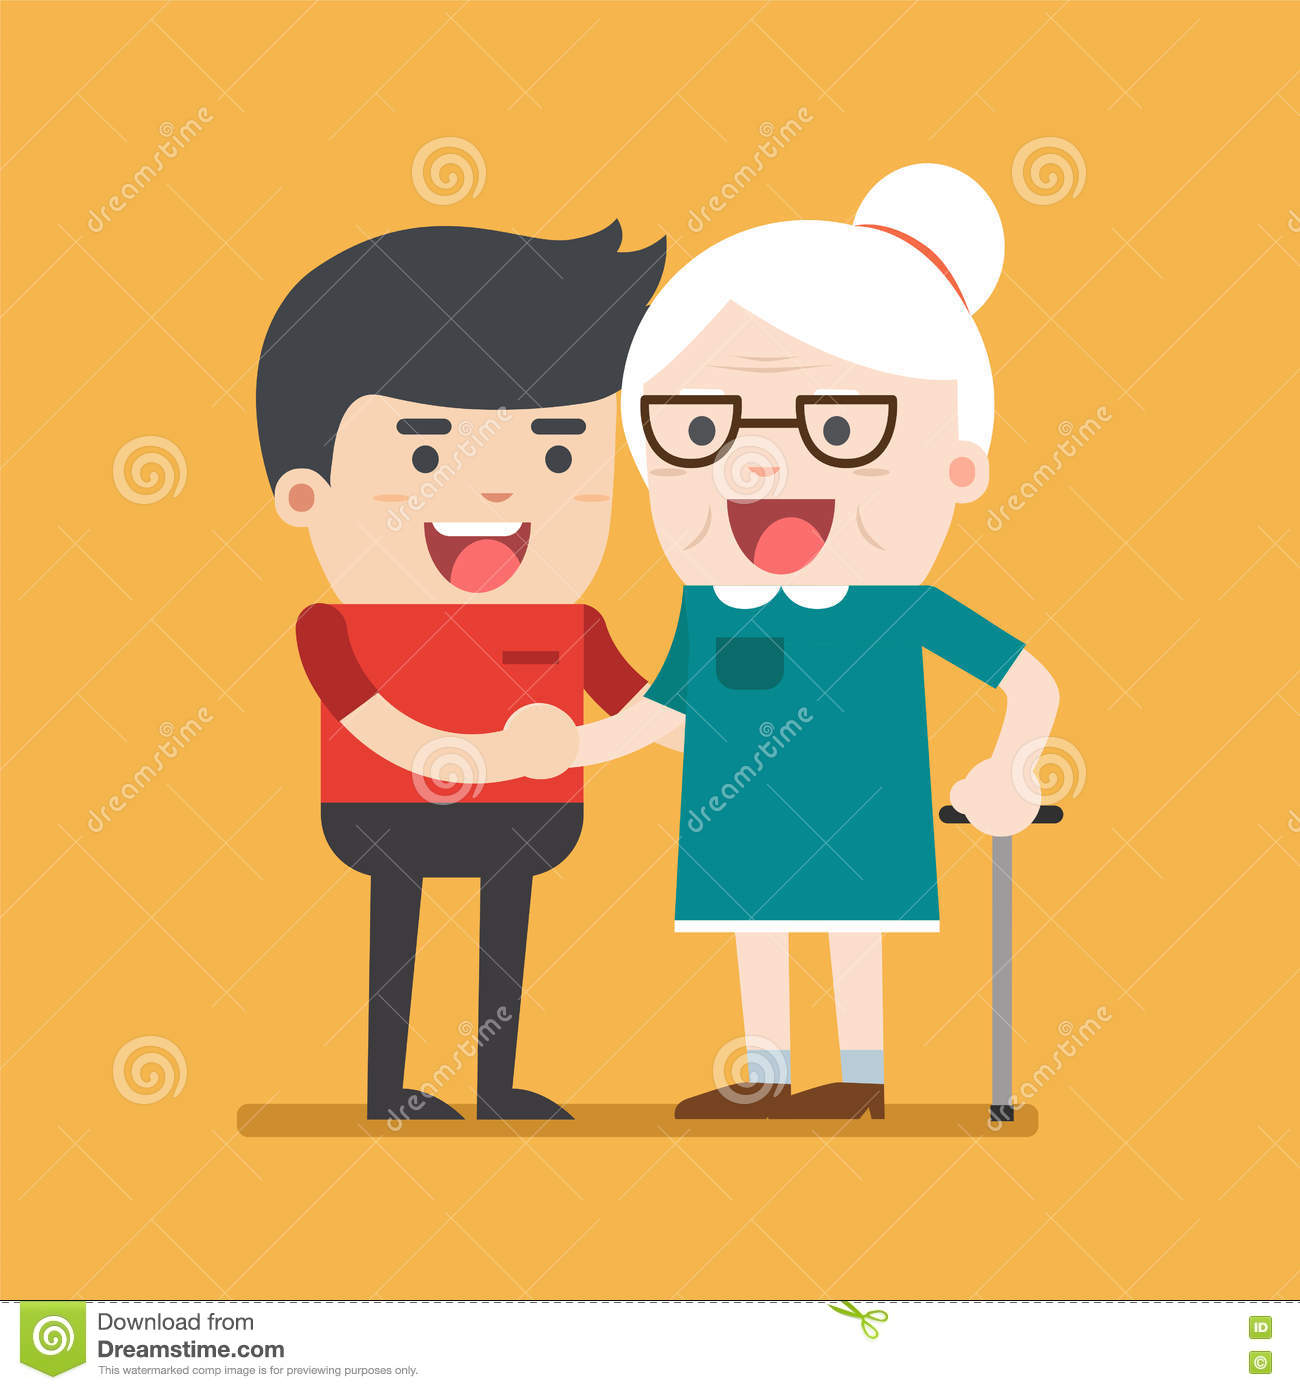 Illustration of young volunteer man caring for elderly woman.